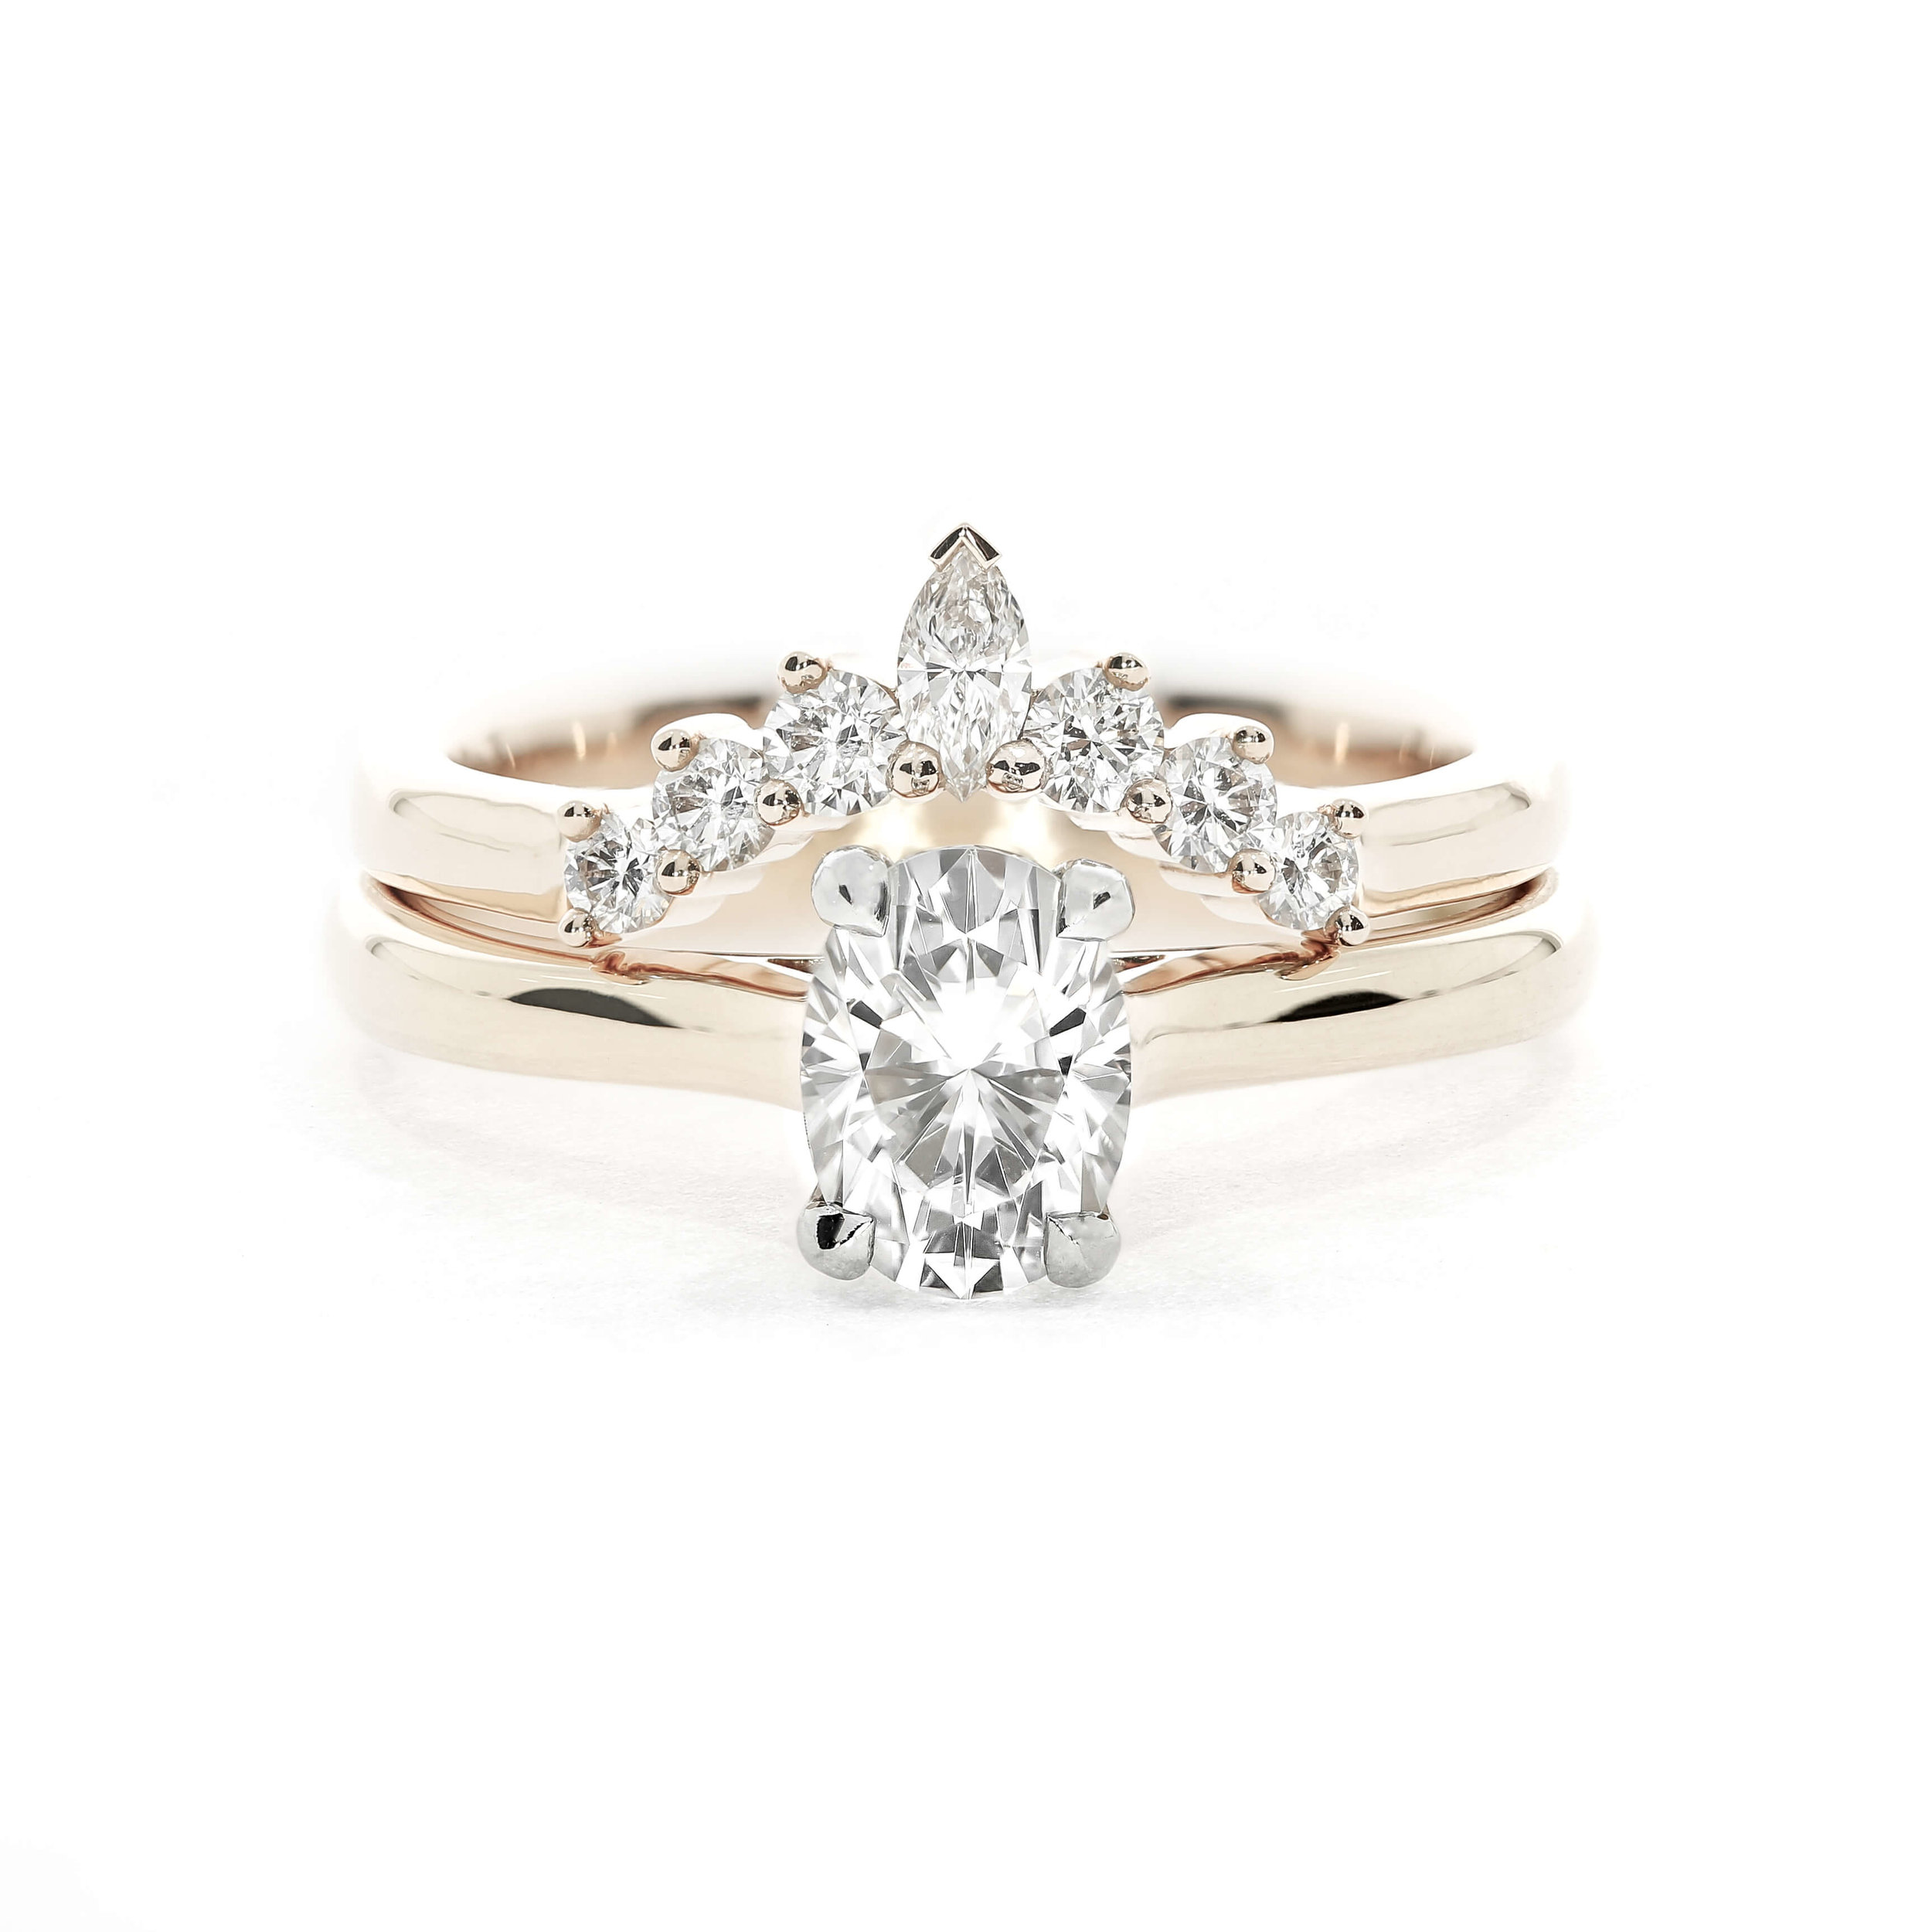 Designing Your Own Bespoke Engagement Ring Where To Start